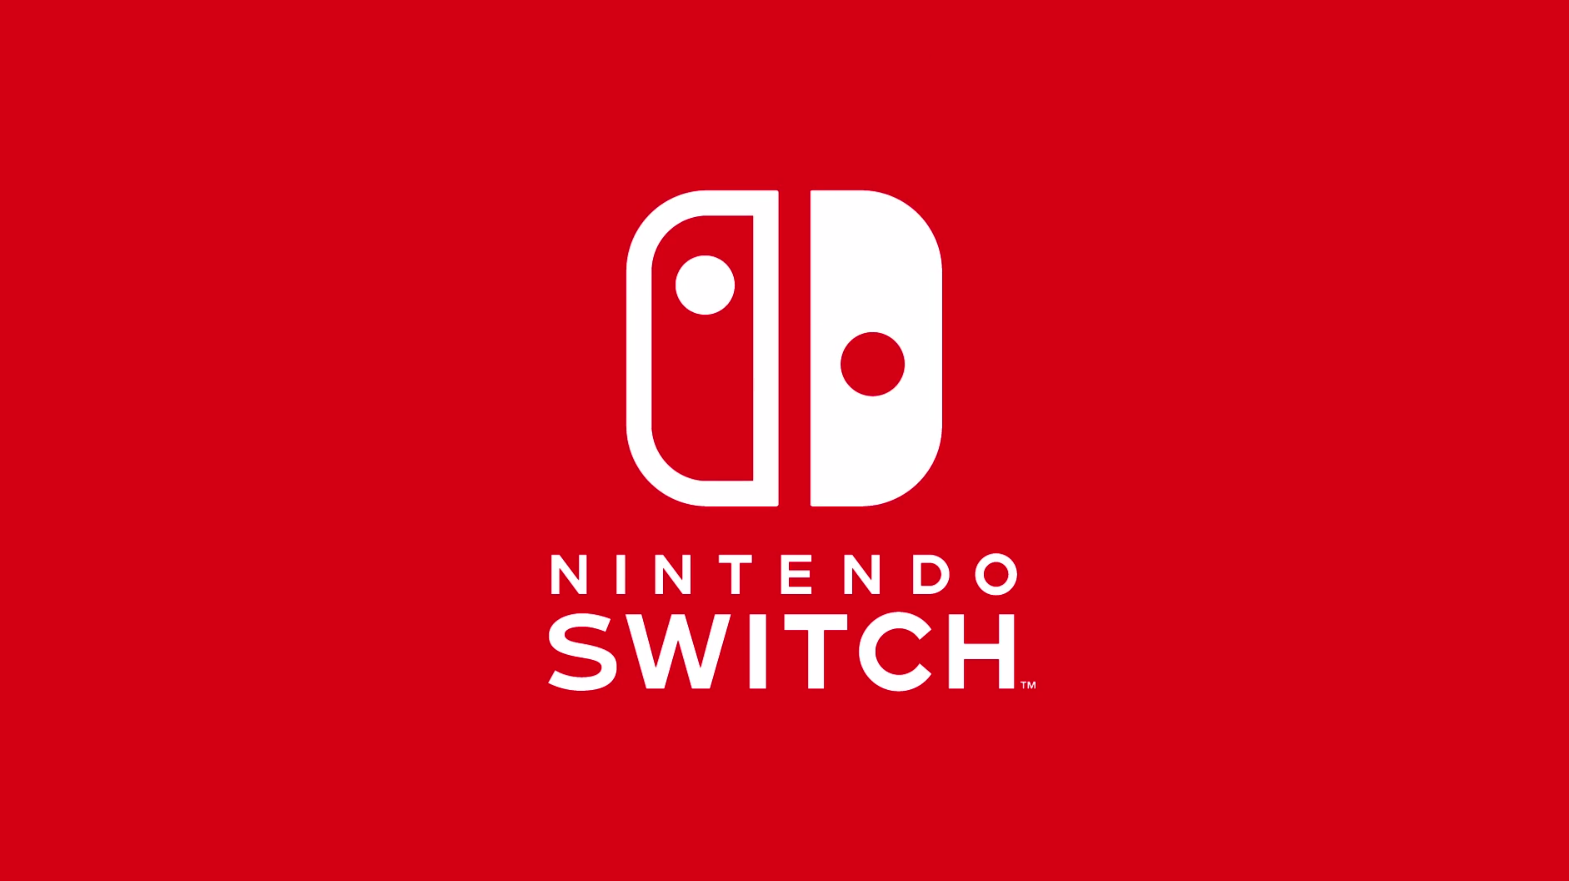 Nintendo Announces The Nintendo Switch; Trailer Released